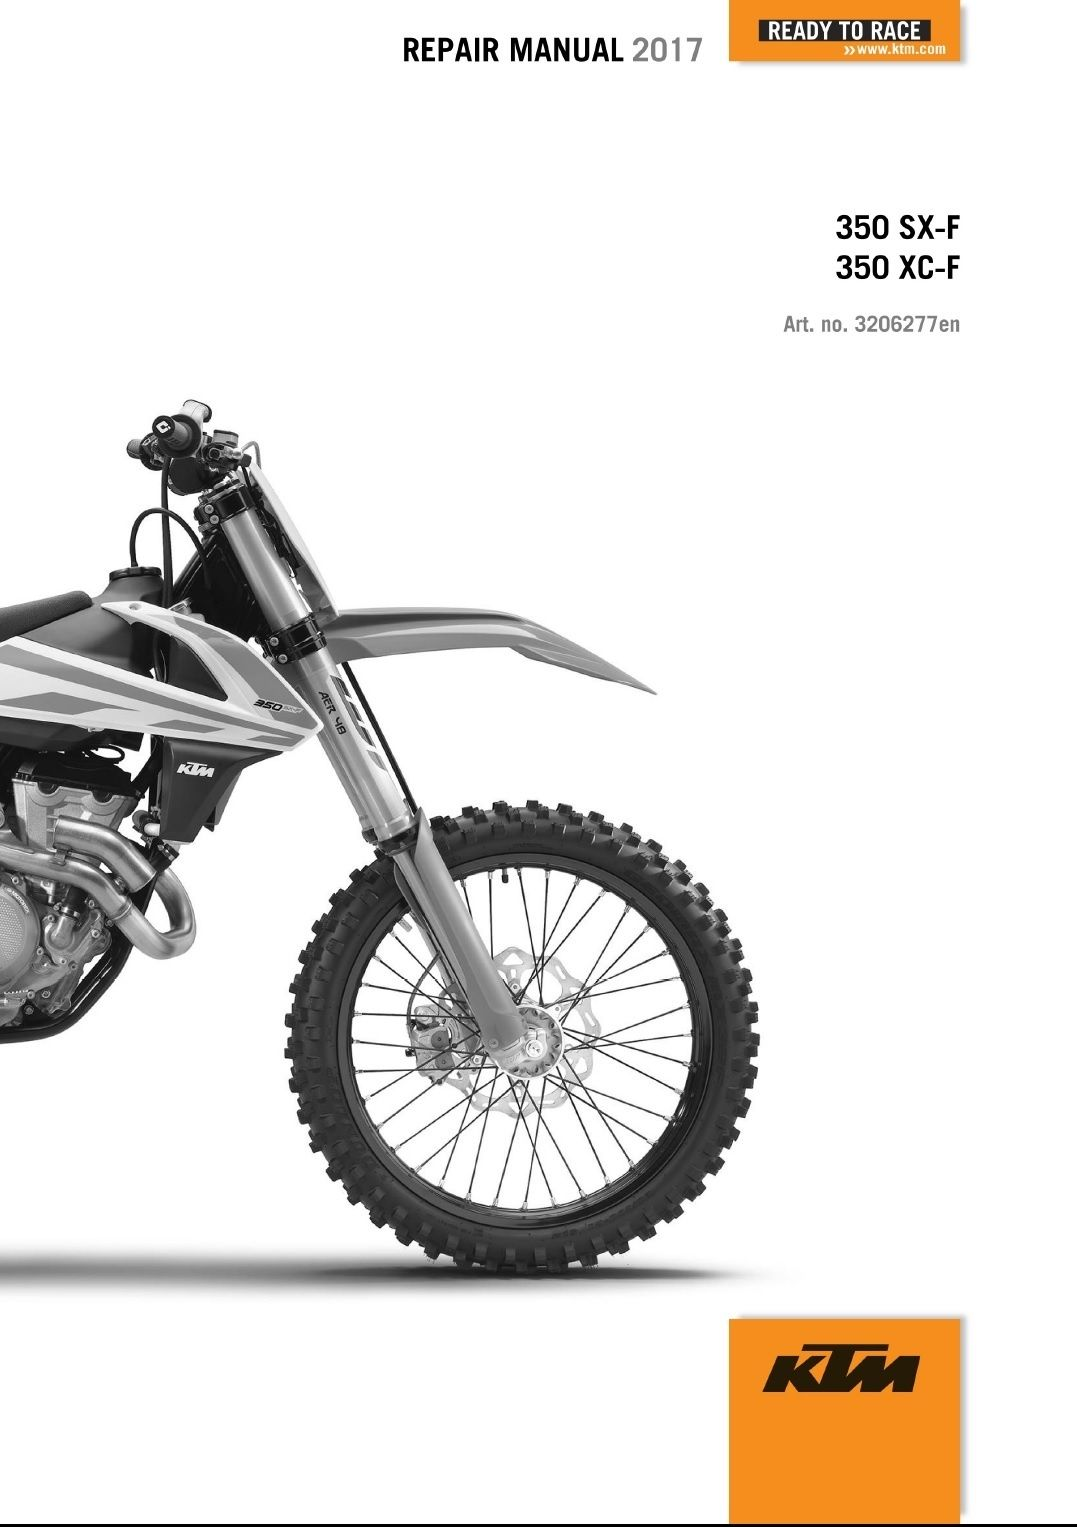 2017 KTM 350 SX-F XC-F SERVICE REPAIR MANUAL. ===